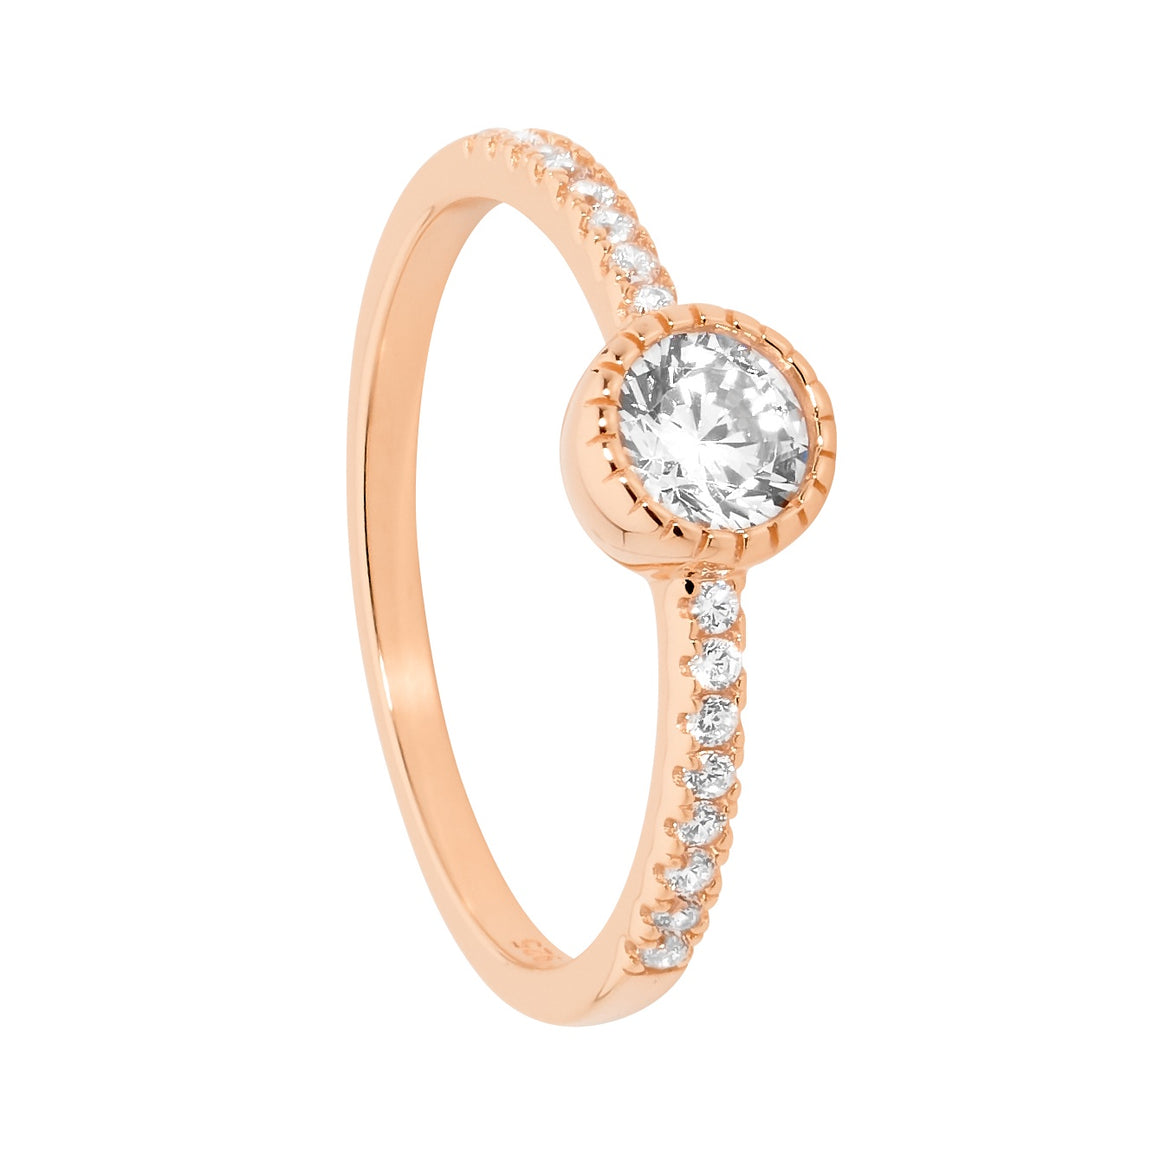 Sterling SilverRose Gold Plated 5mm White CZ Crown Set Solitaire with CZ band Size Q